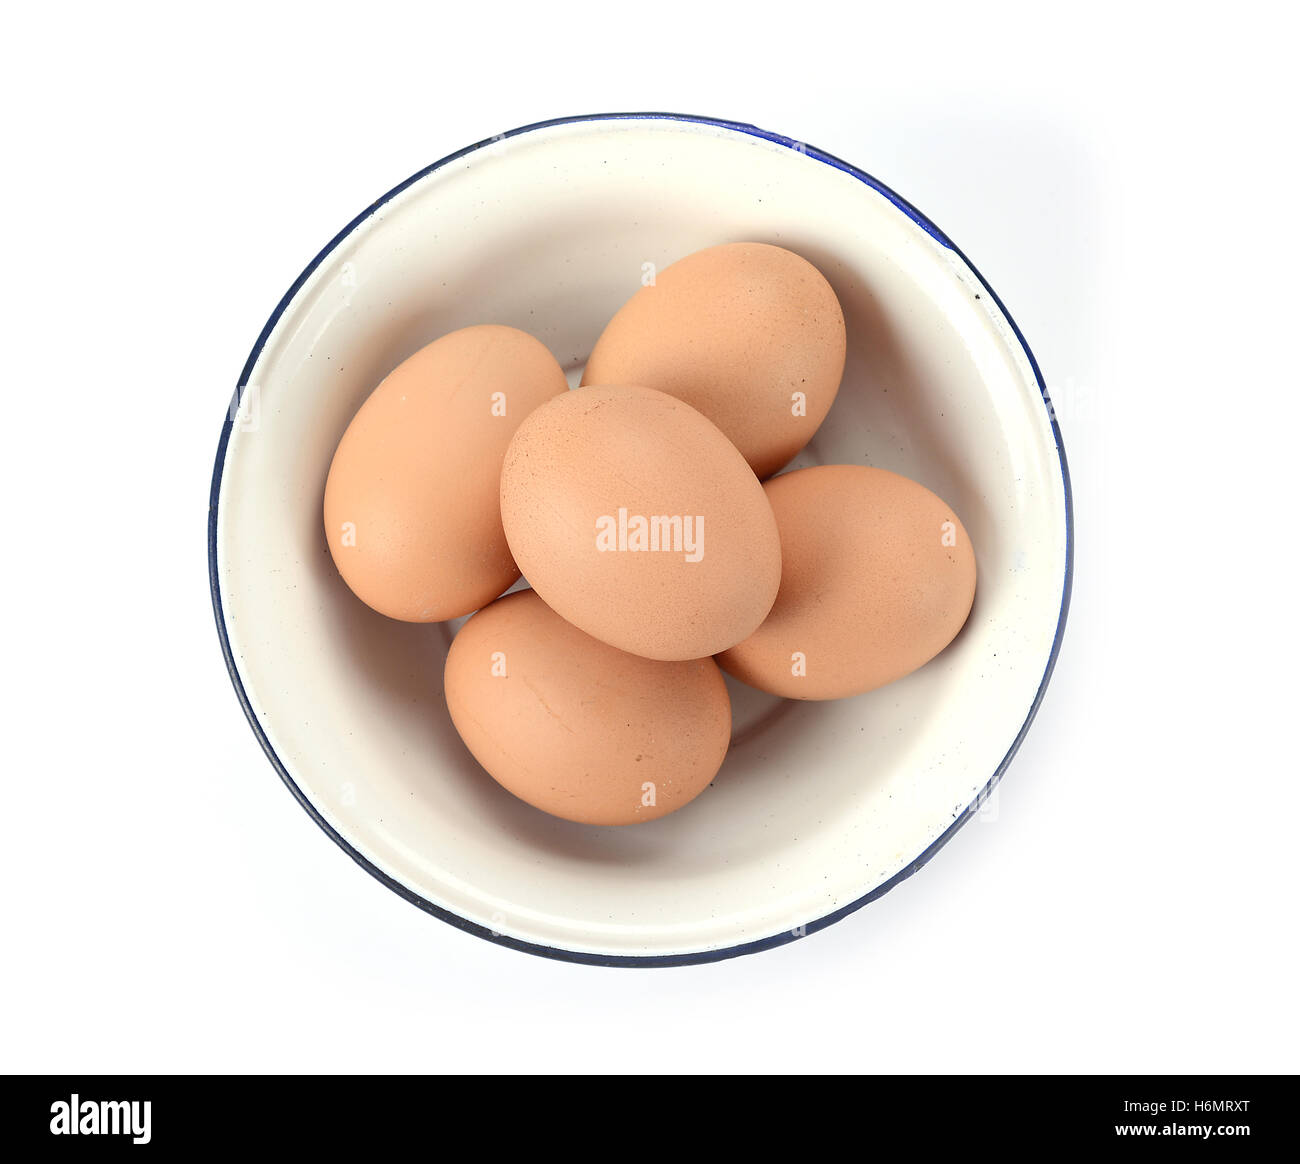 eggs in the bowl - Stock Image